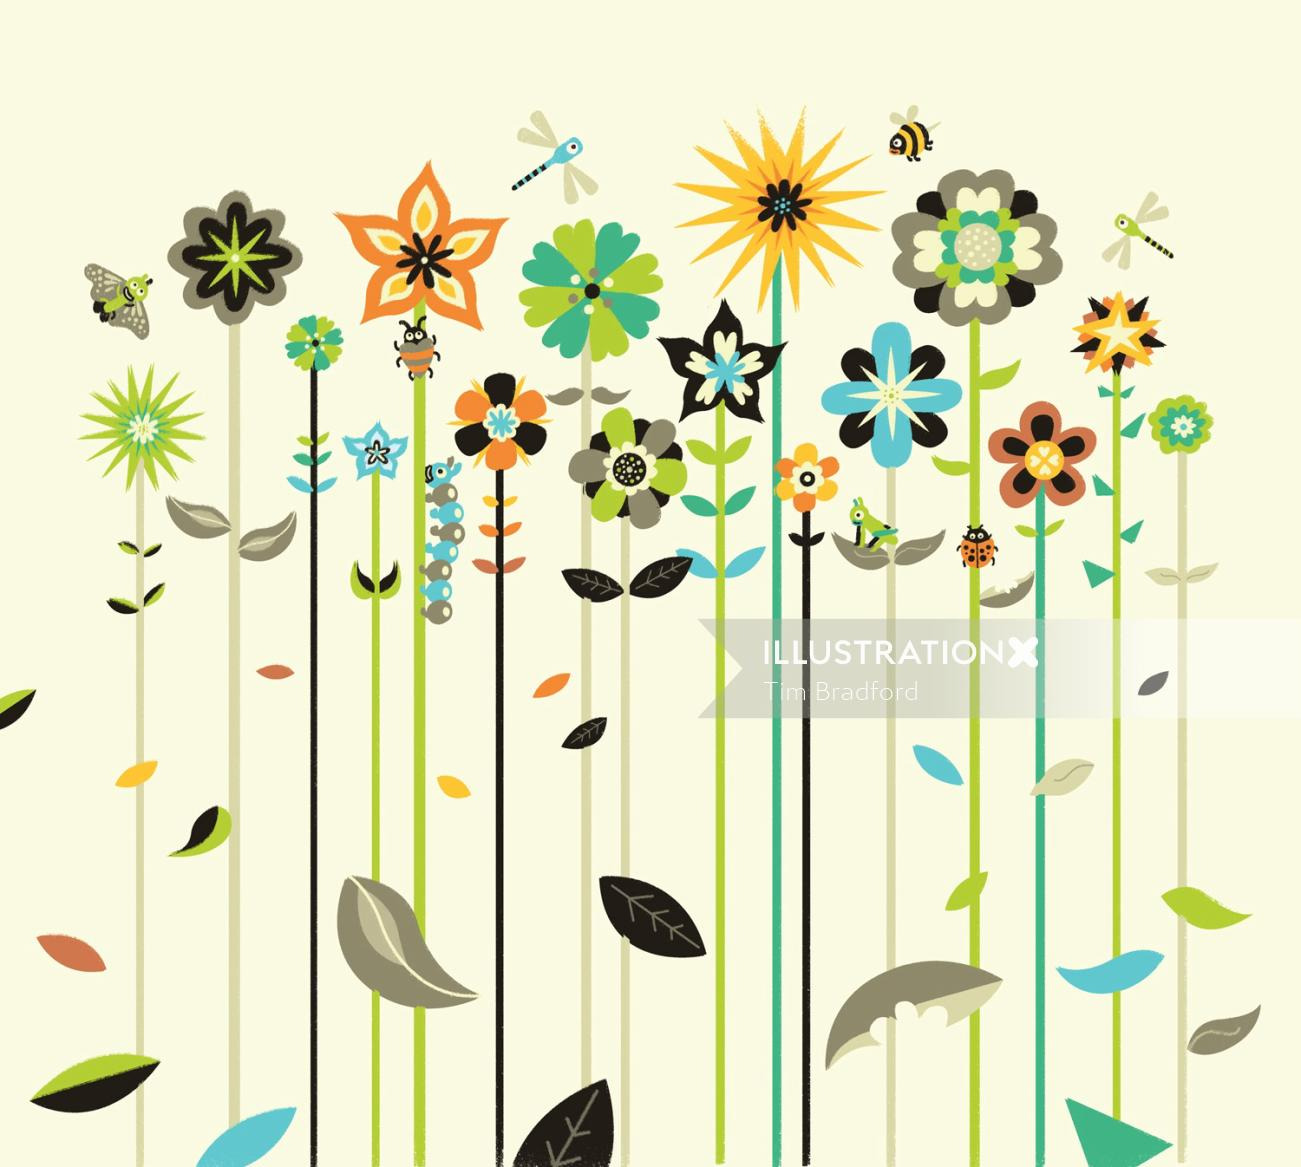 Nature illustration of different flowers